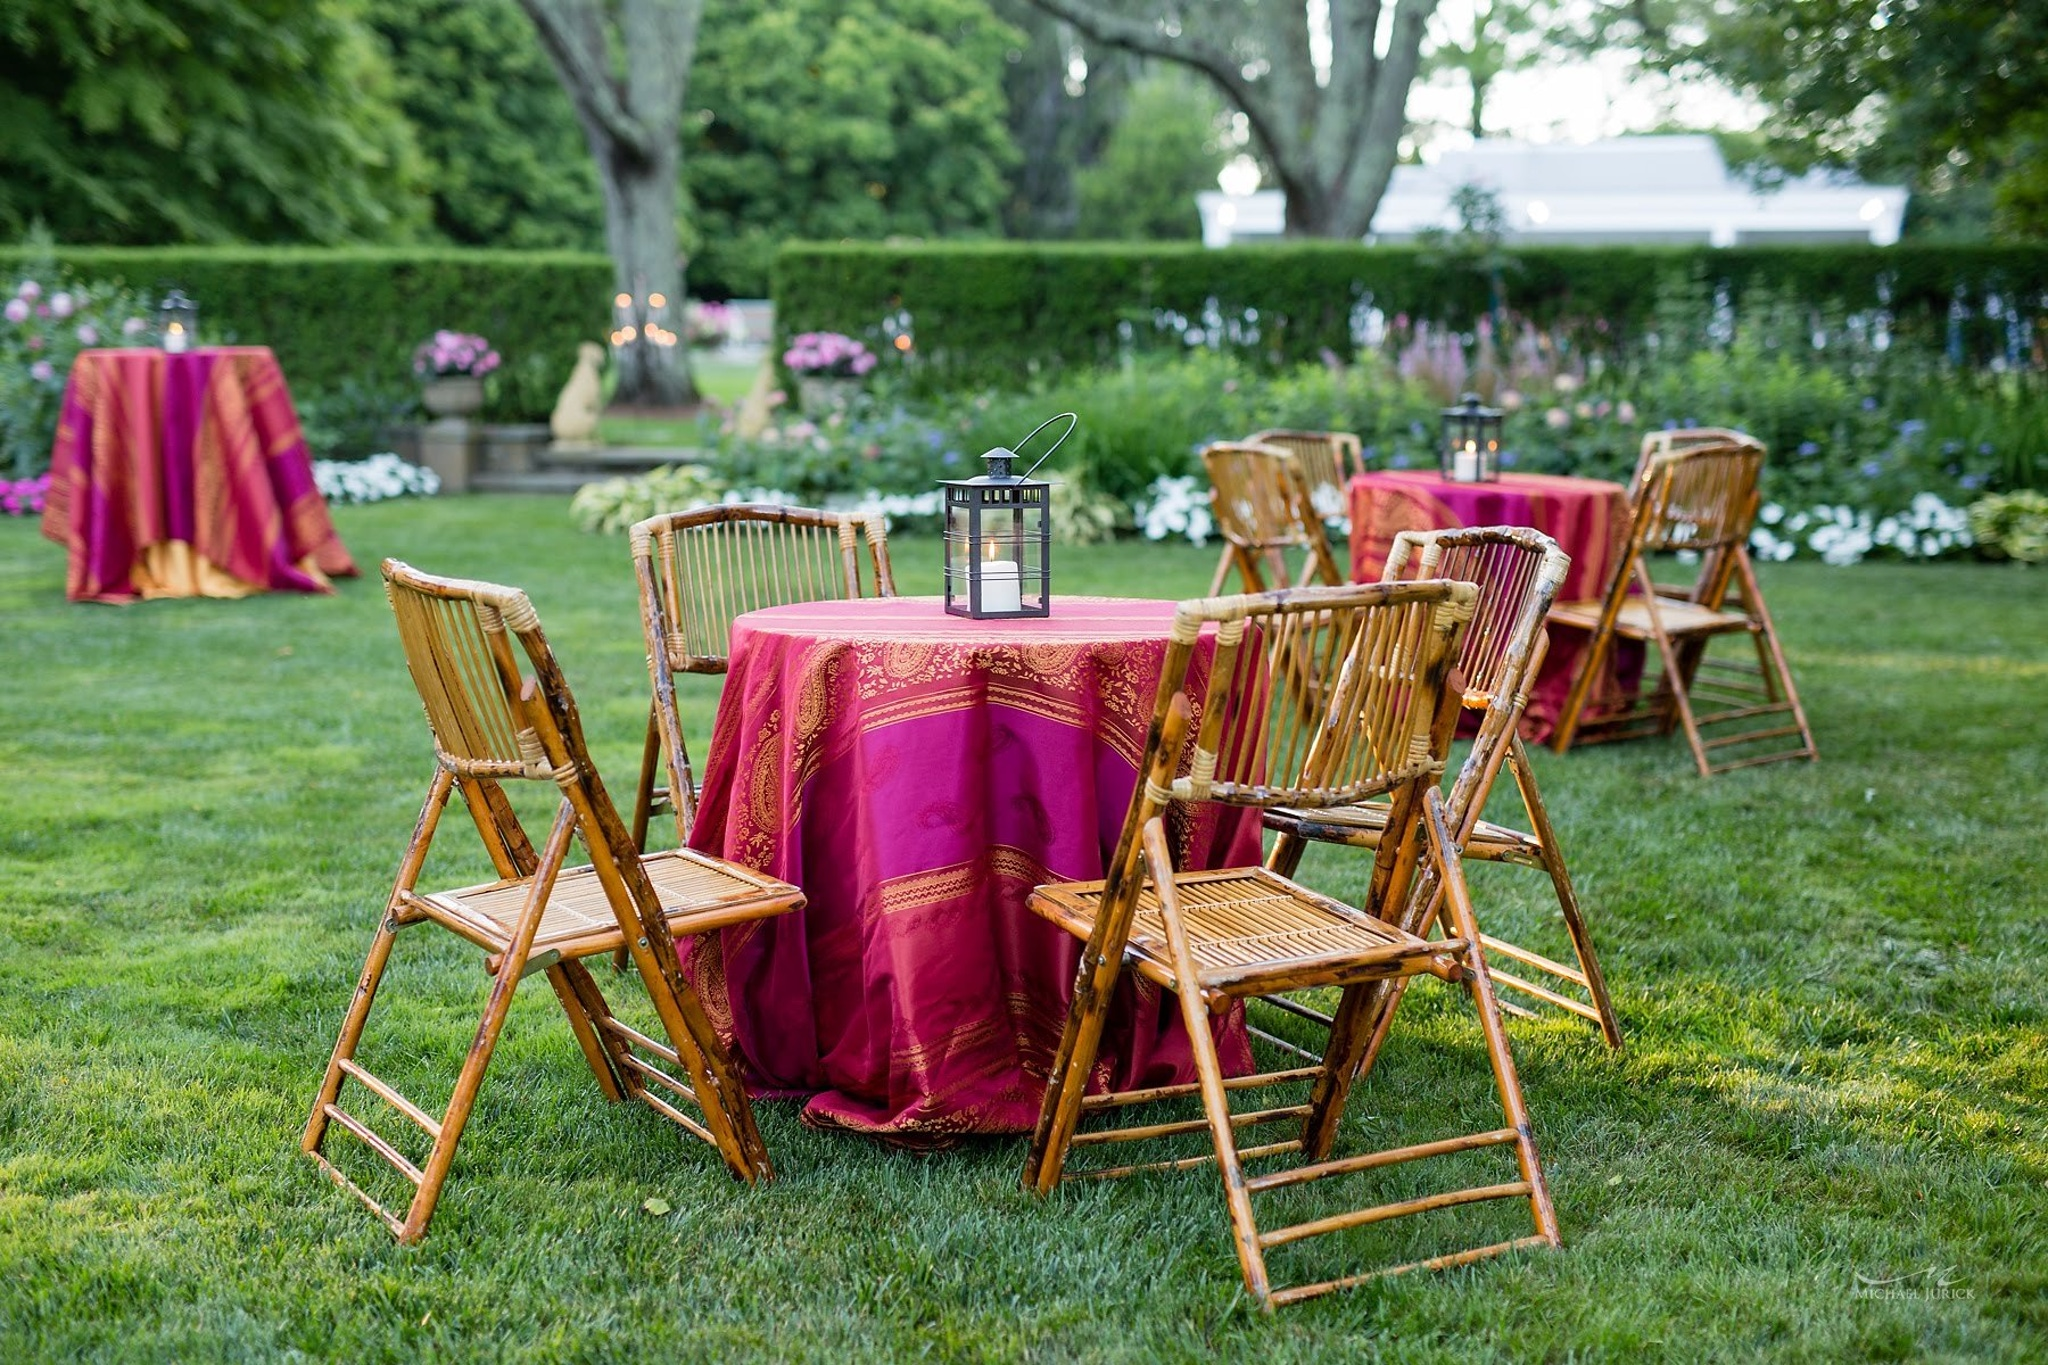 boho-chic tables outdoors